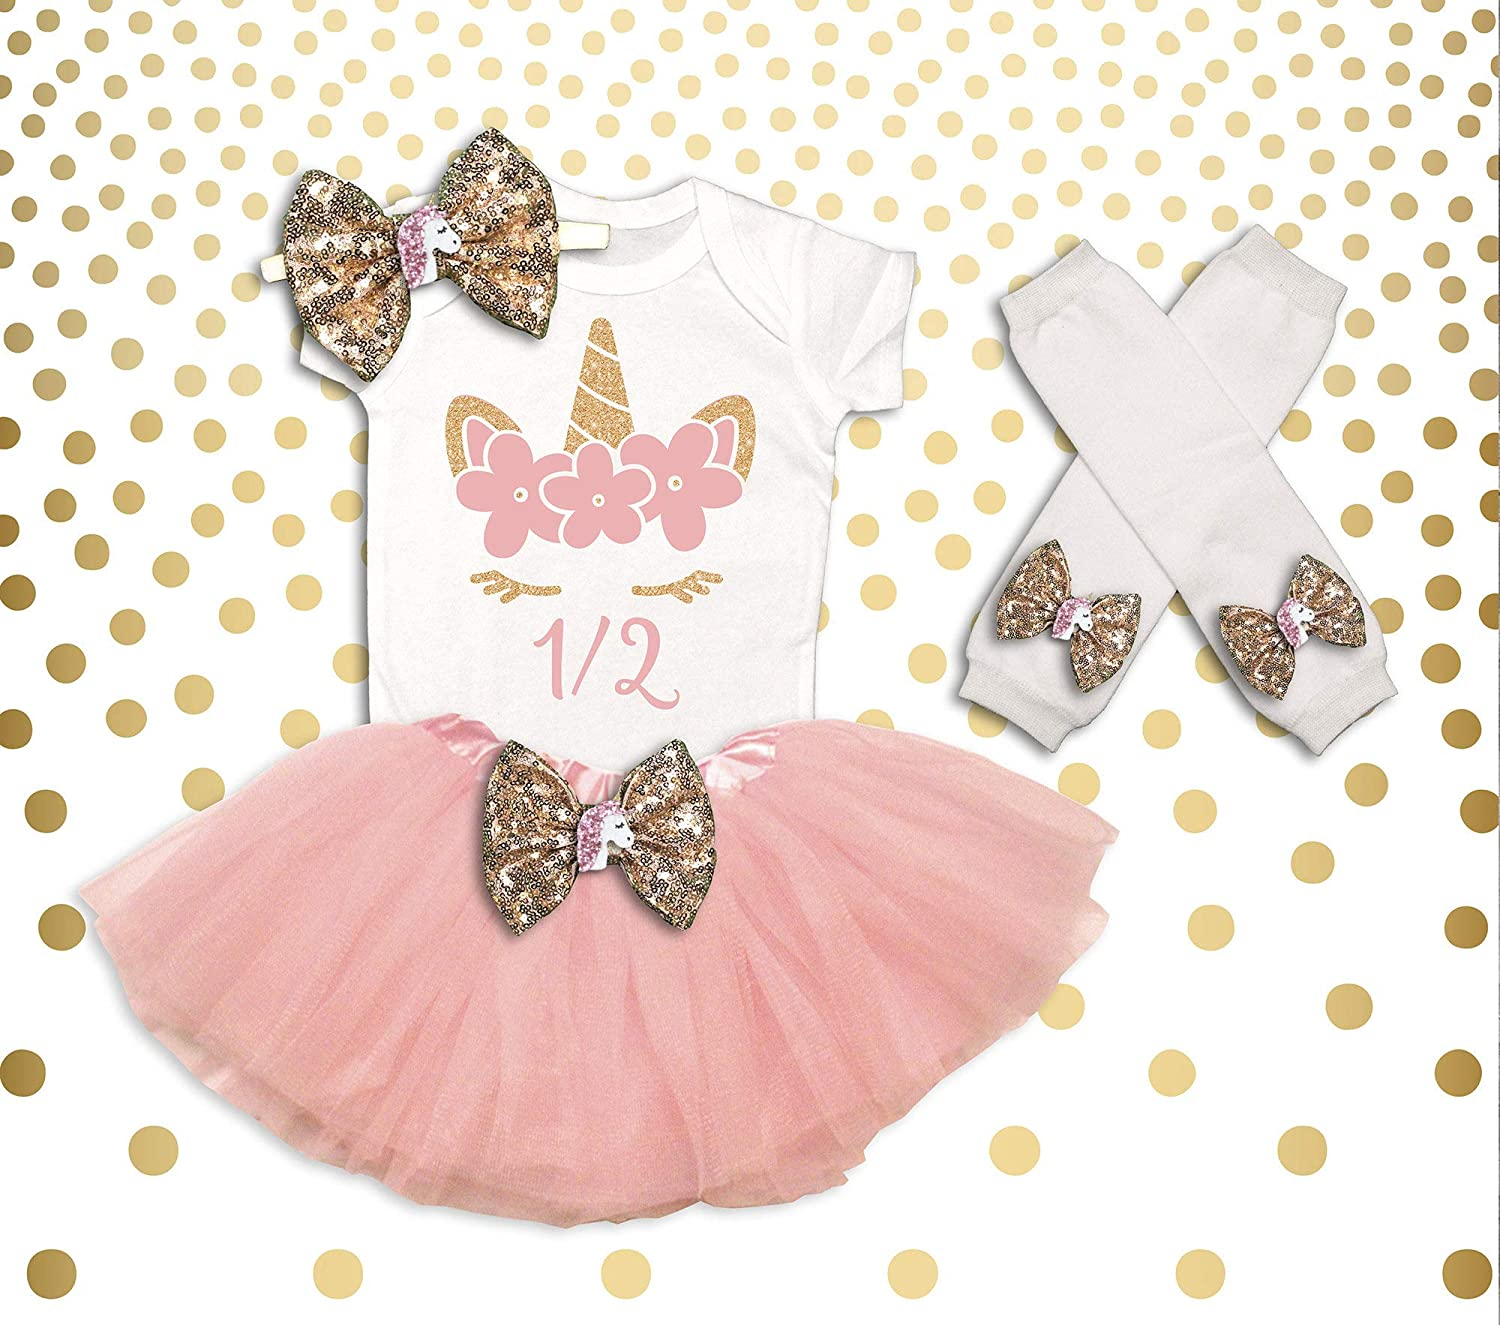 1447410c7f75 Amazon.com  Unicorn 1 2 Birthday Outfit Girl Unicorn Birthday Shirt Unicorn Birthday  Outfit Unicorn Half Birthday Tutu 1 2 Birthday Girl Outfit  Handmade